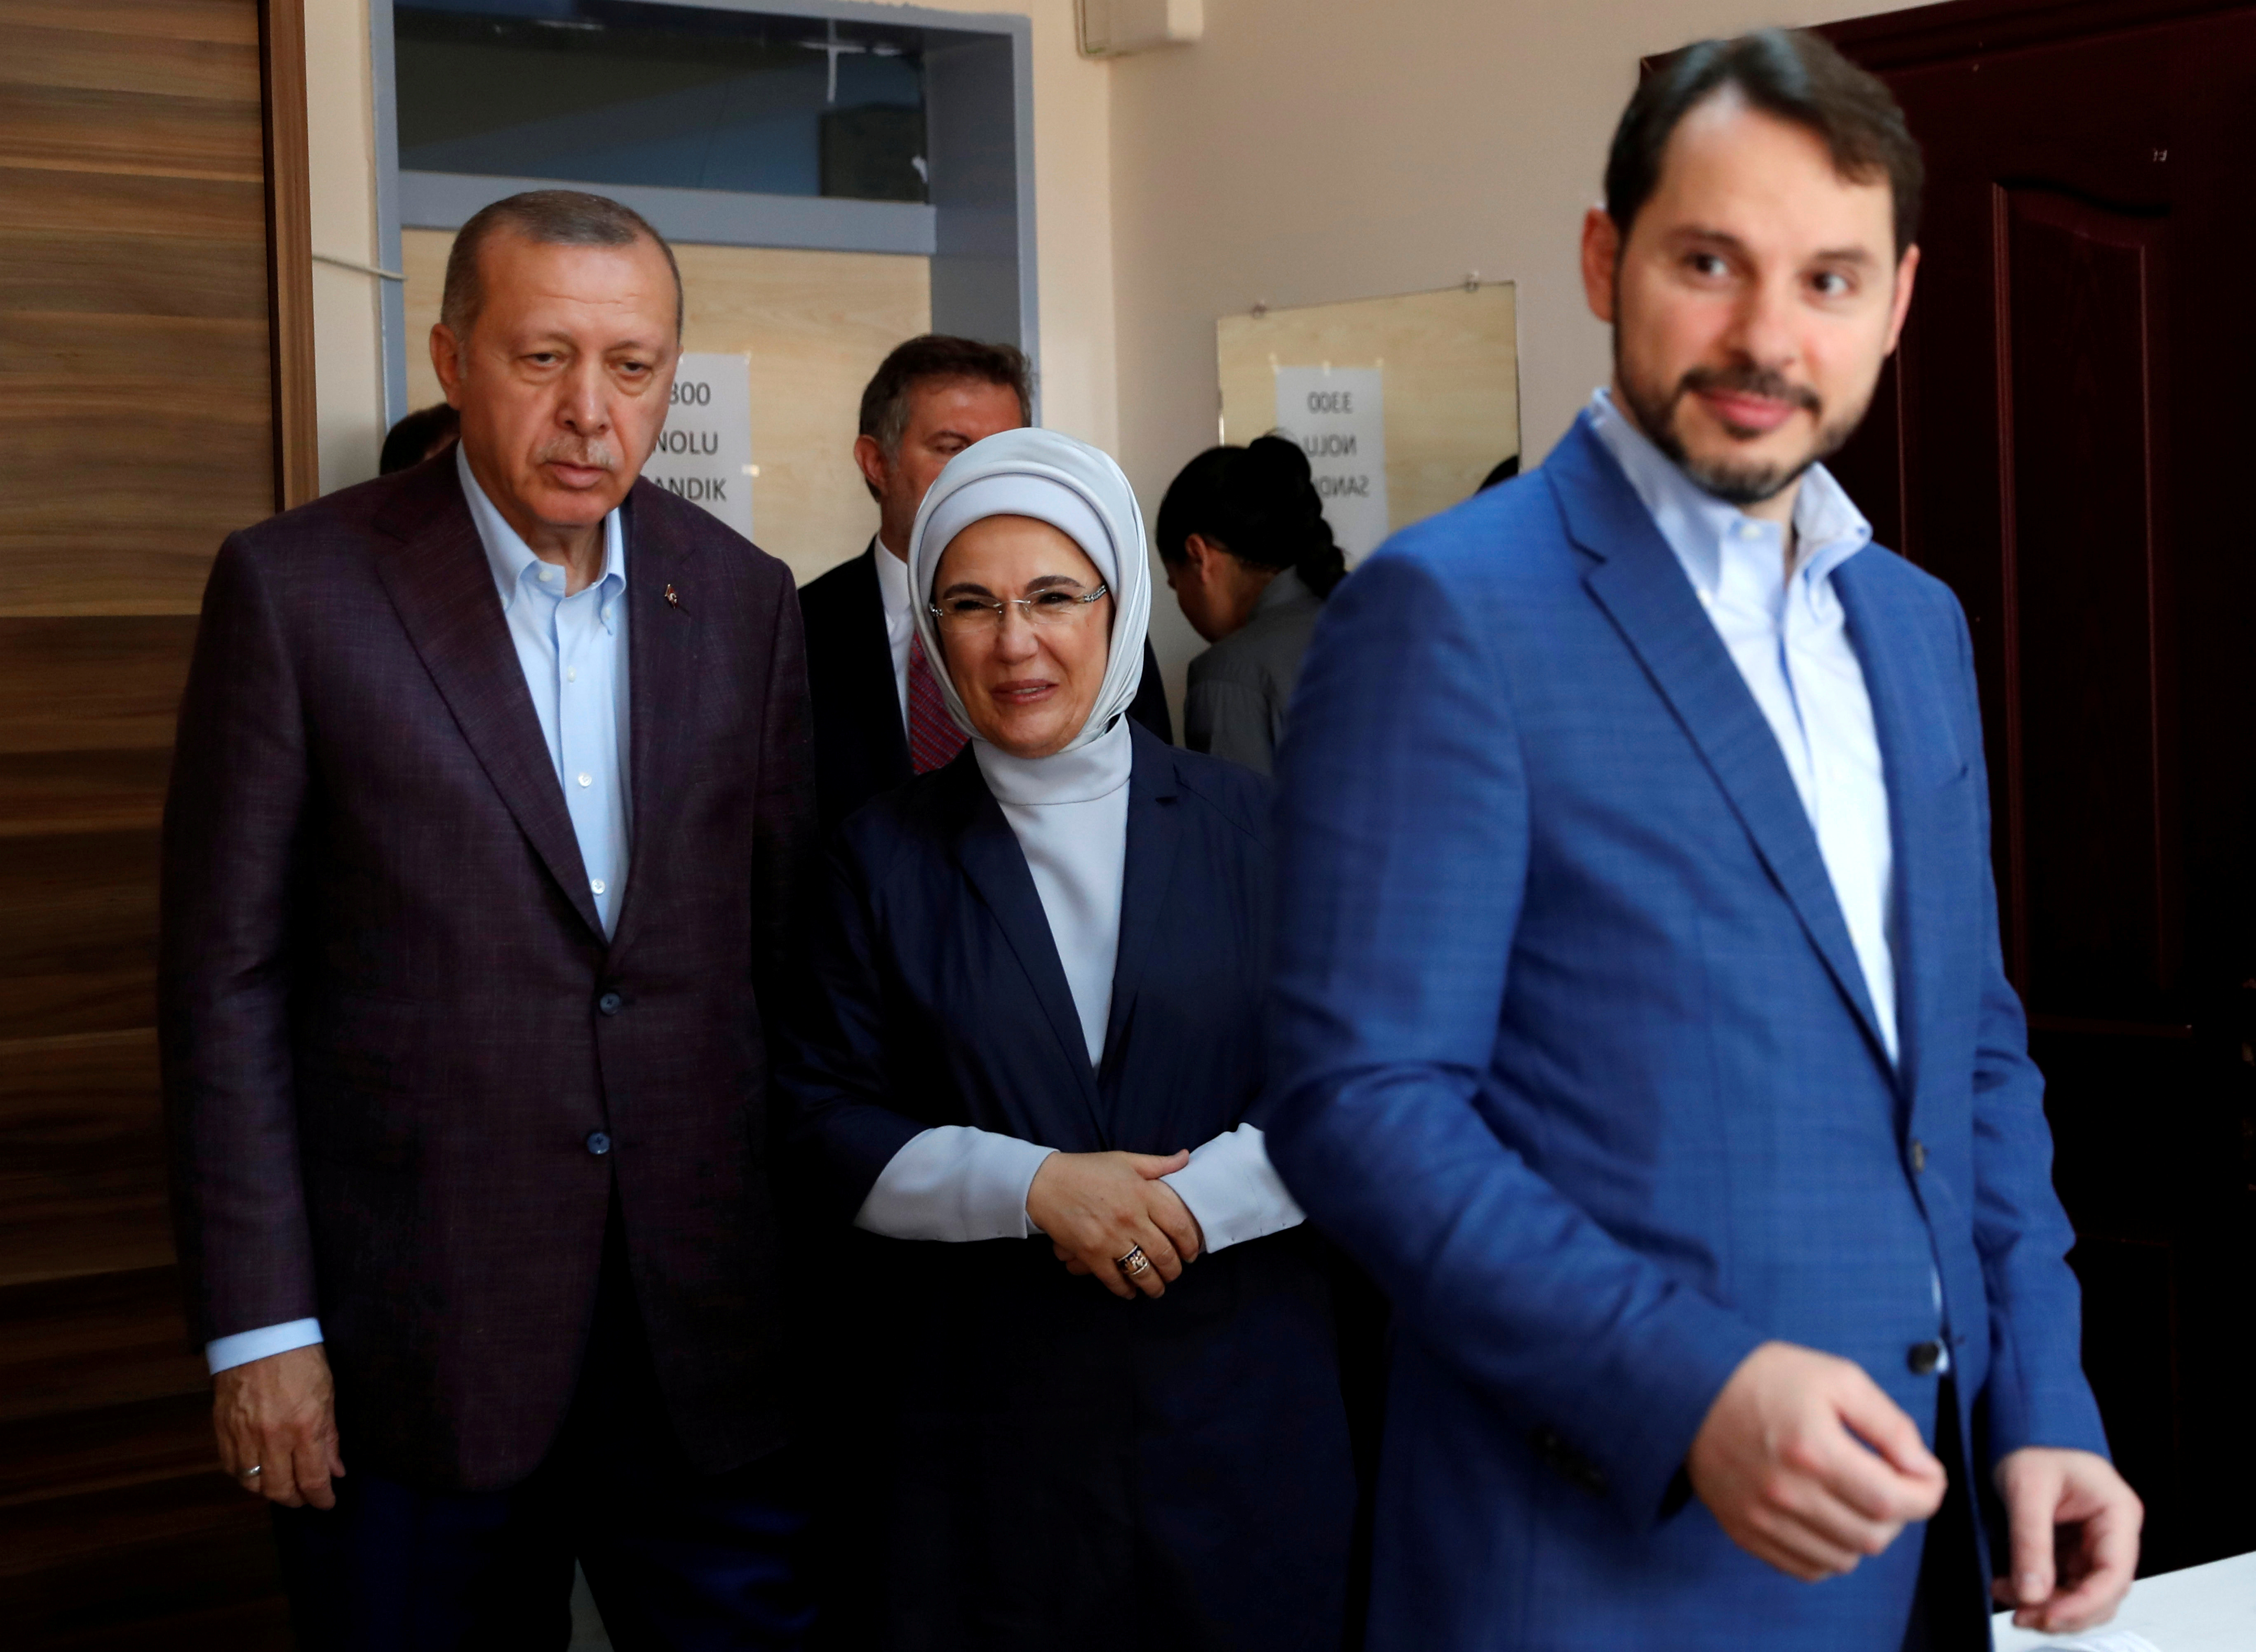 Turkish President Tayyip Erdogan and his wife Emine look on after Turkish Treasury and Finance Minister Berat Albayrak cast his ballot at a polling station in Istanbul, Turkey, June 23, 2019. REUTERS/Murad Sezer/File Photo